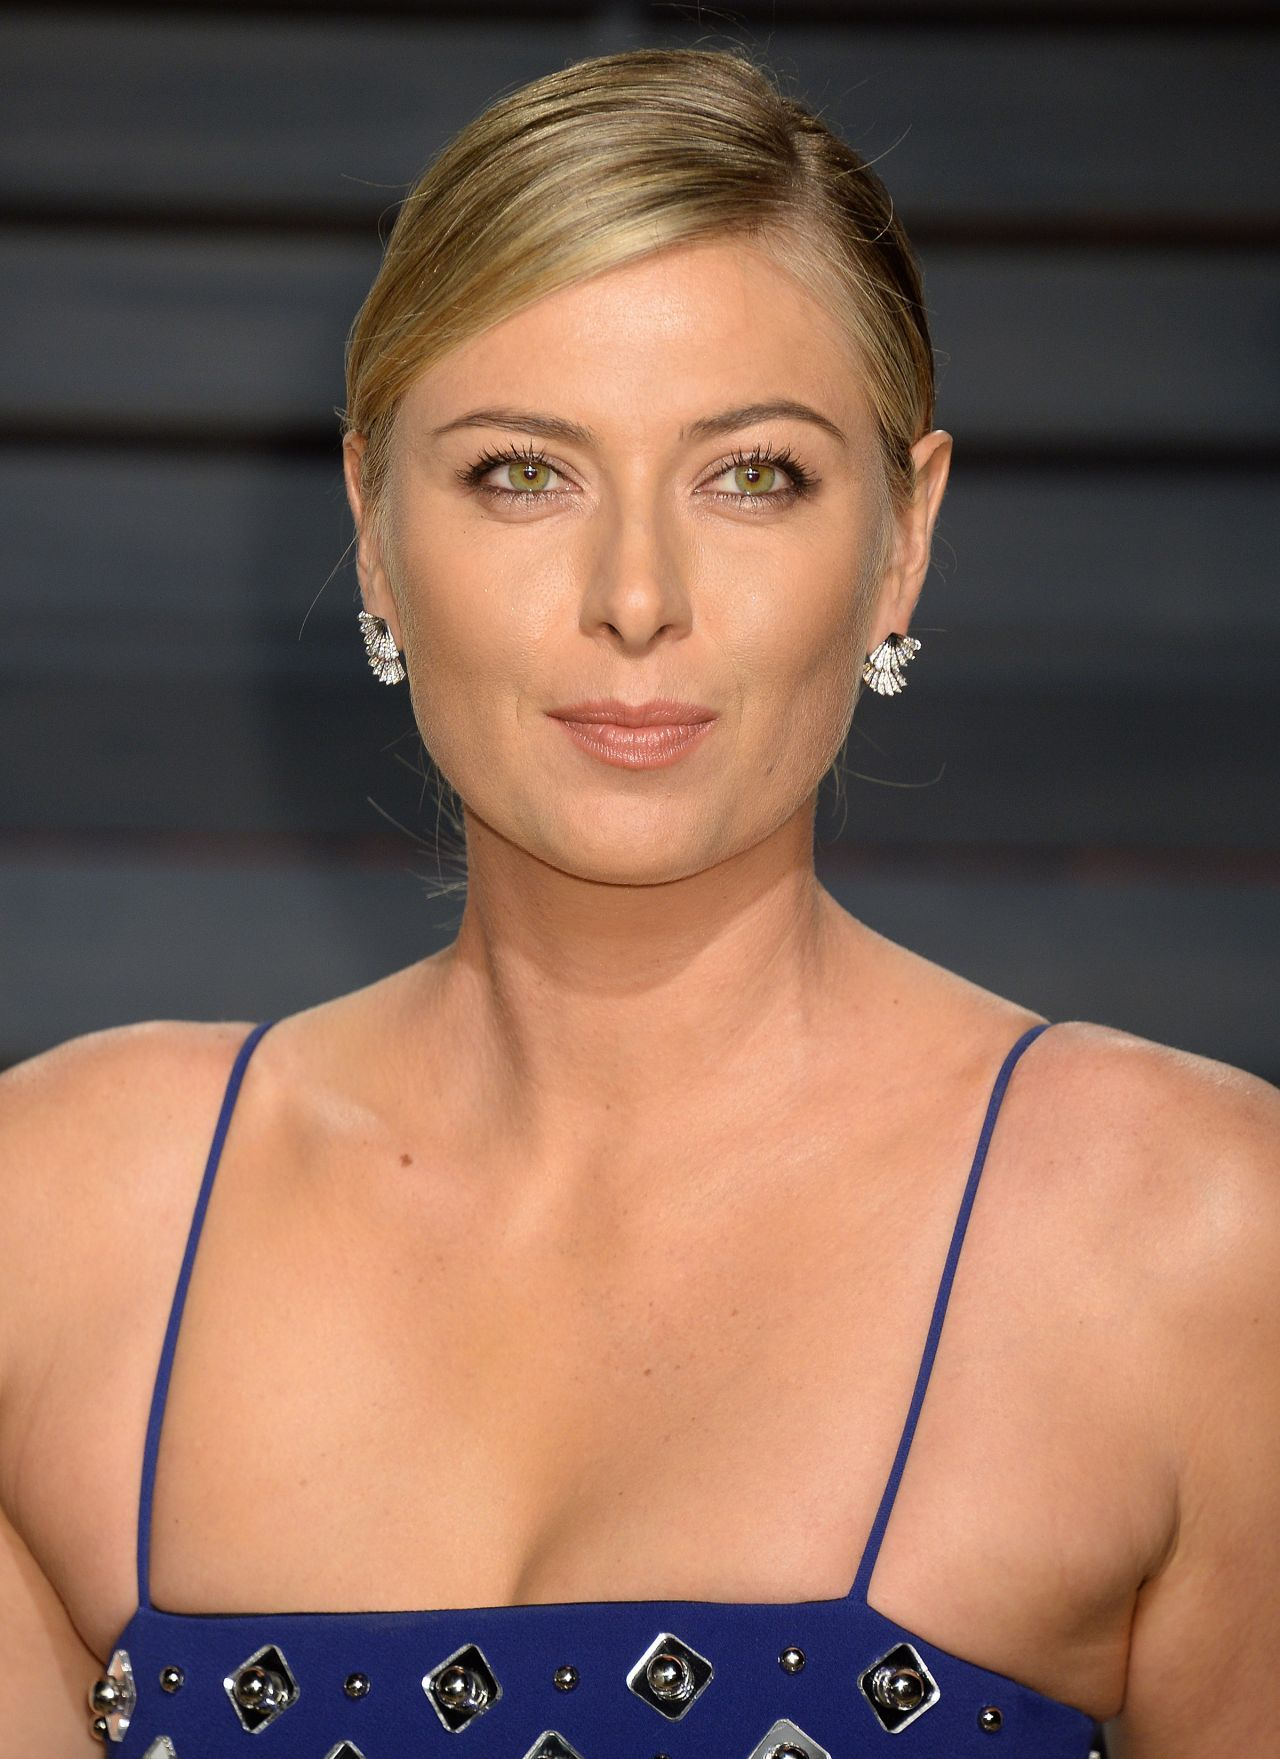 Maria Sharapova MariaSharapova at Vanity Fair Oscar 2017 Party in